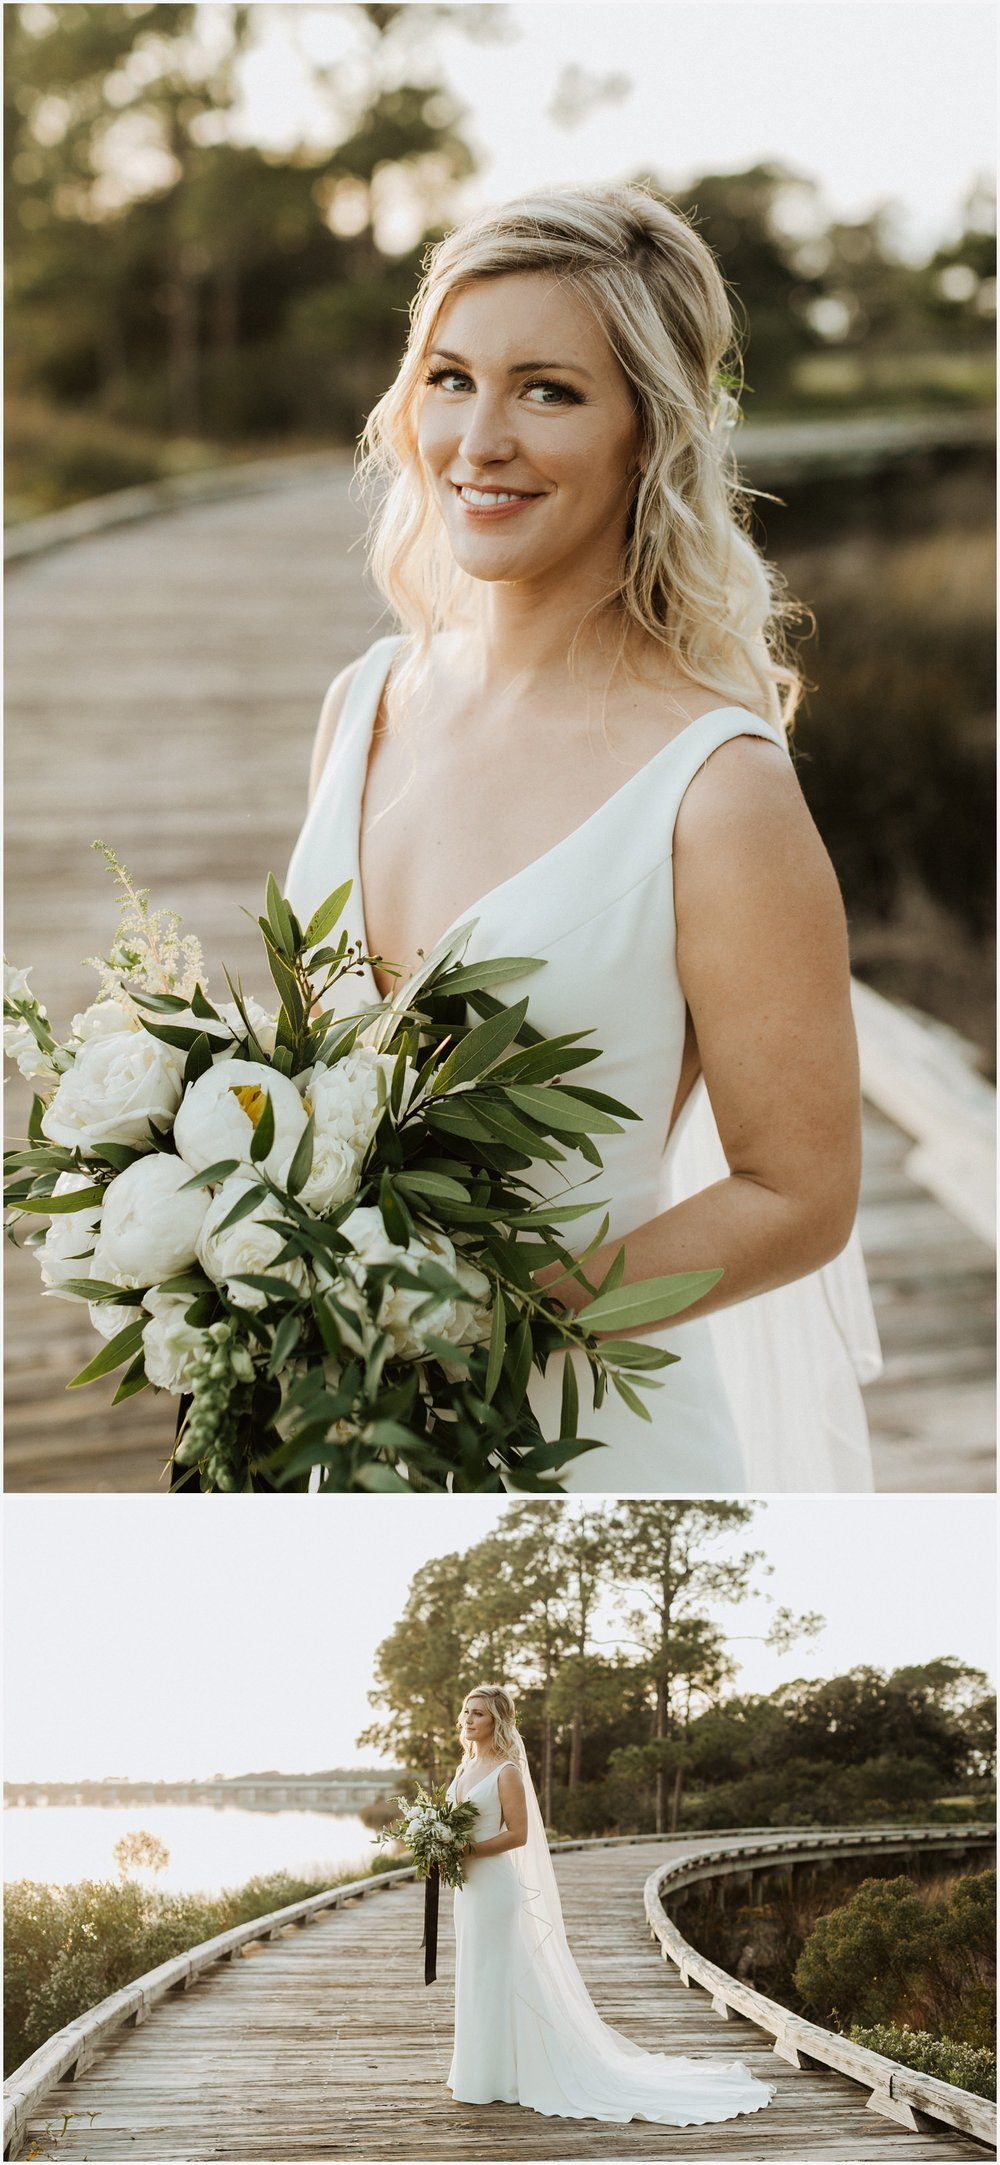 Bridal portraits at her Shark's Tooth Golf Club Wedding